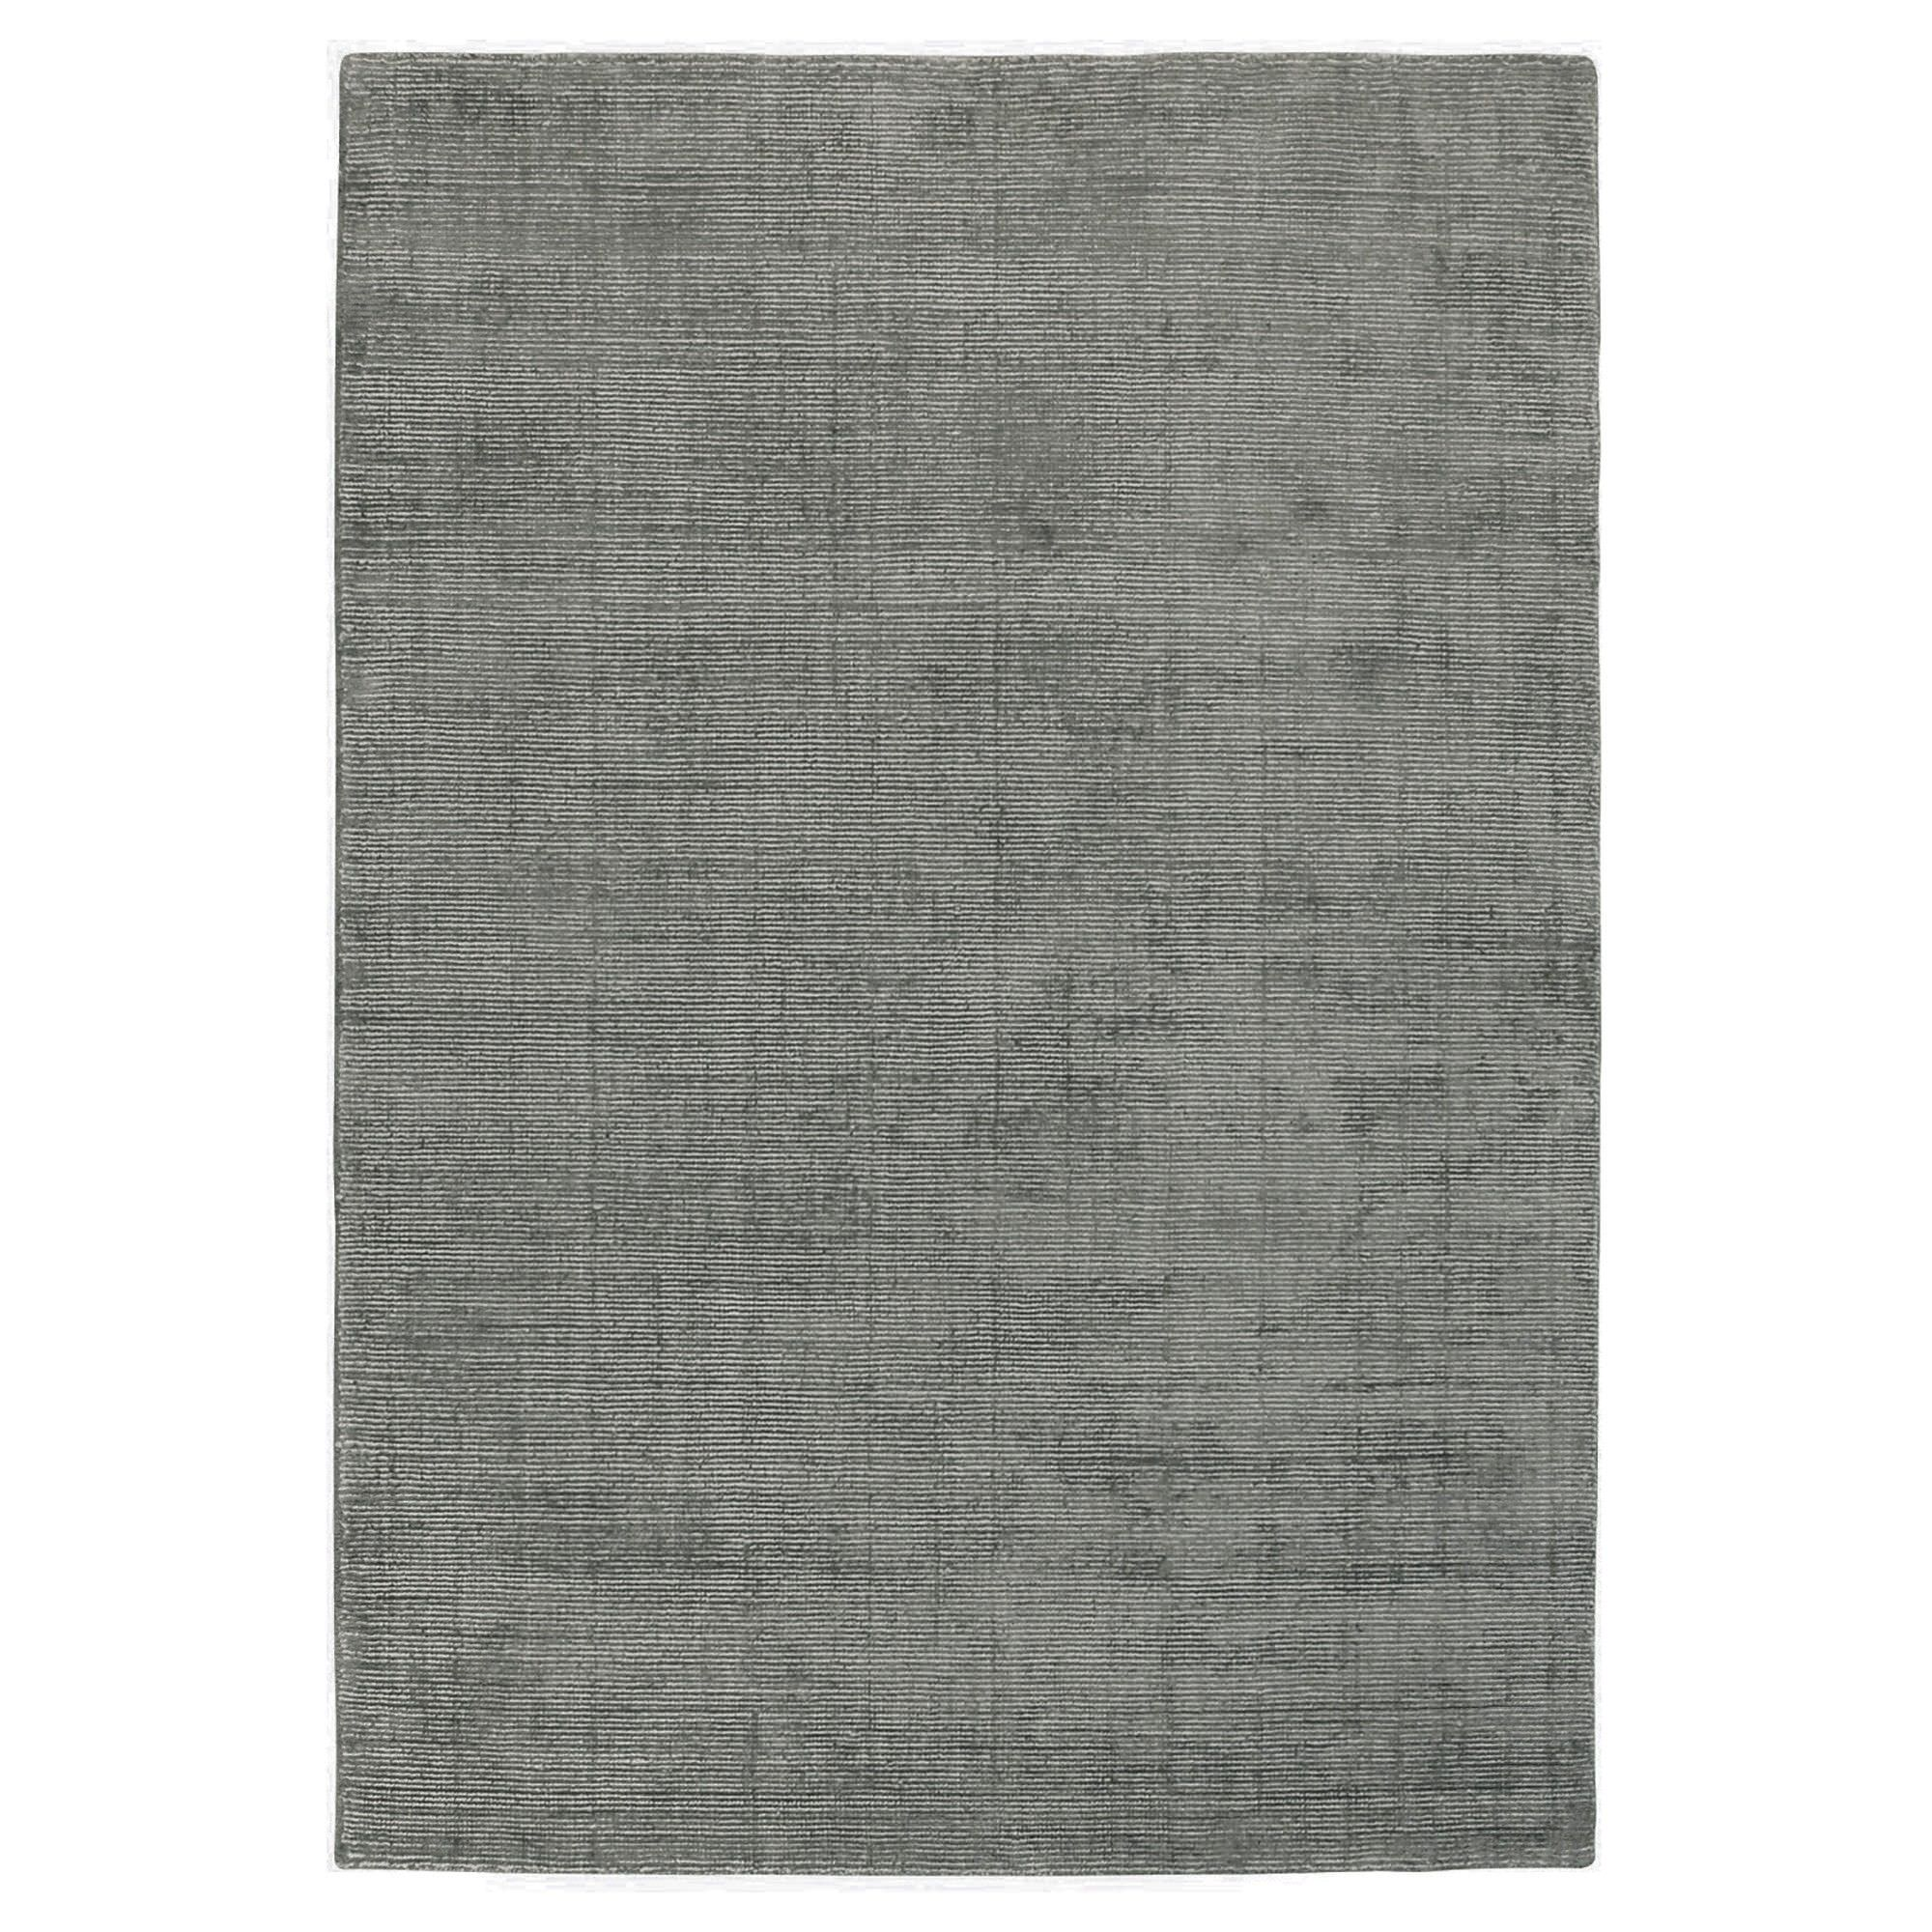 Elements Hand Knotted Wool Rug, 300x400cm, Grey